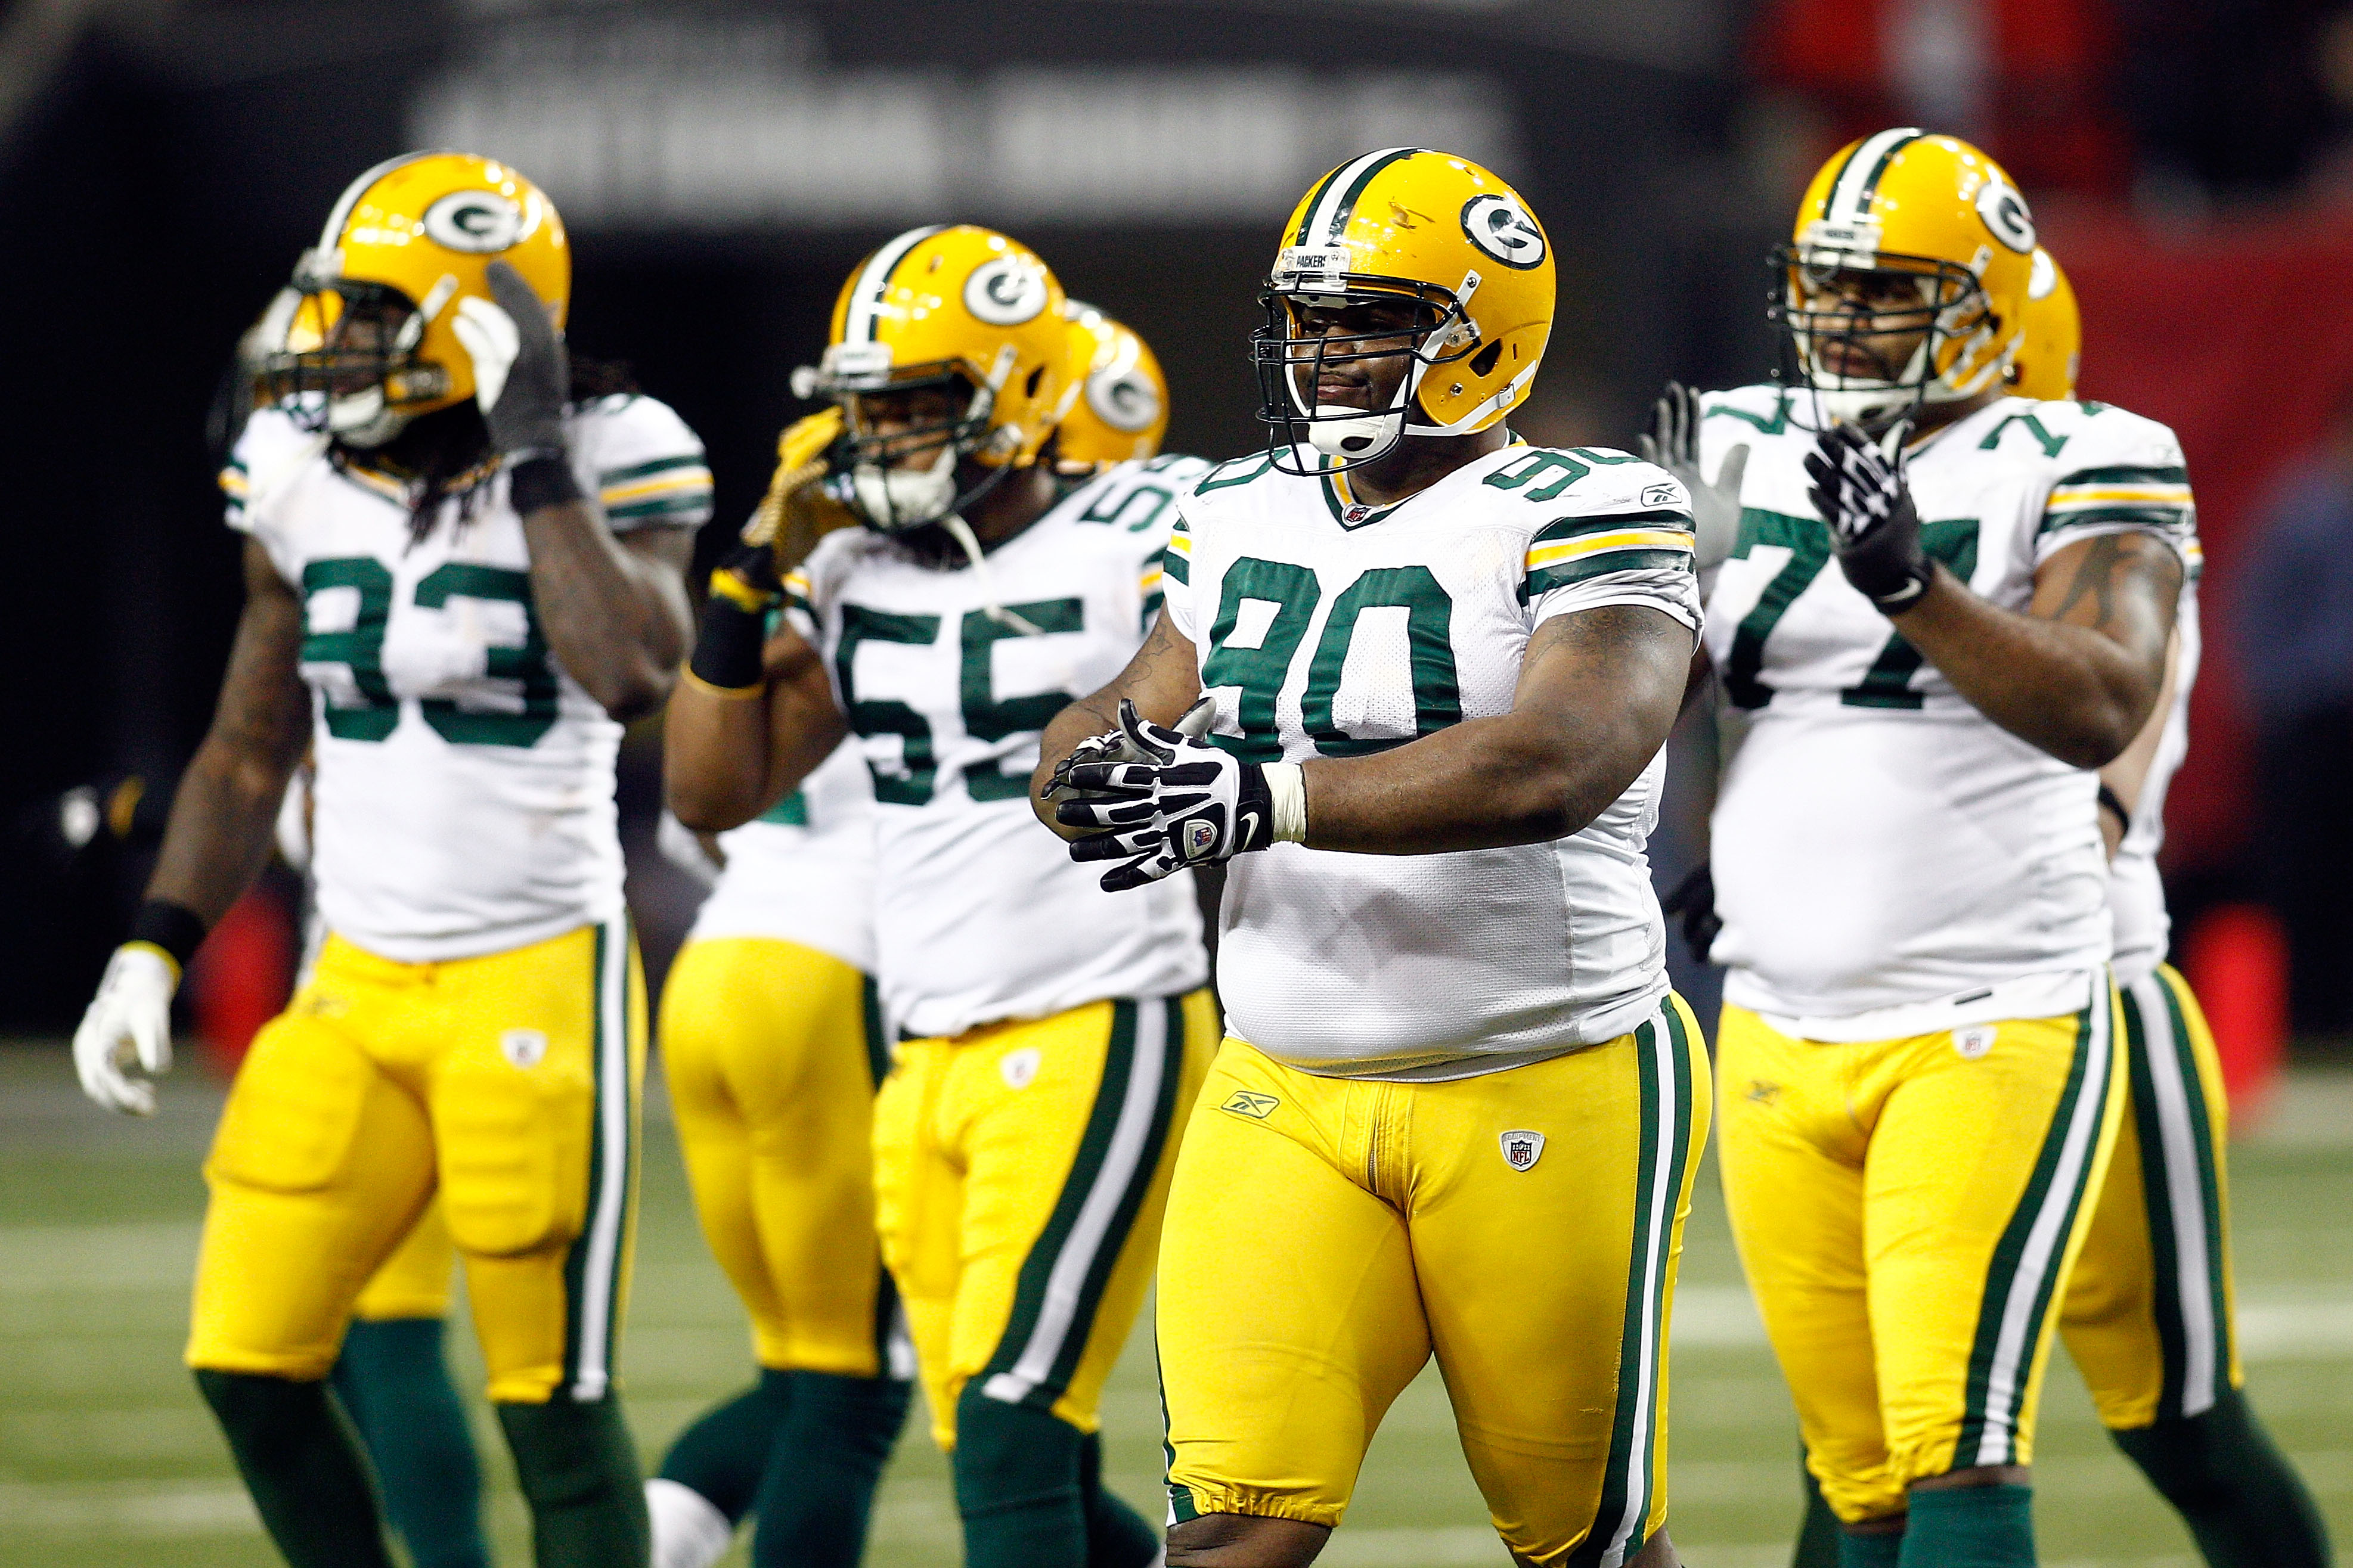 ATLANTA, GA - JANUARY 15:  (L-R) Erik Walden #93, Desmond Bishop #55, B.J. Raji #90 and Cullen Jenkins #77 of the Green Bay Packers walk towards the sideline against the Atlanta Falcons during their 2011 NFC divisional playoff game at Georgia Dome on Janu